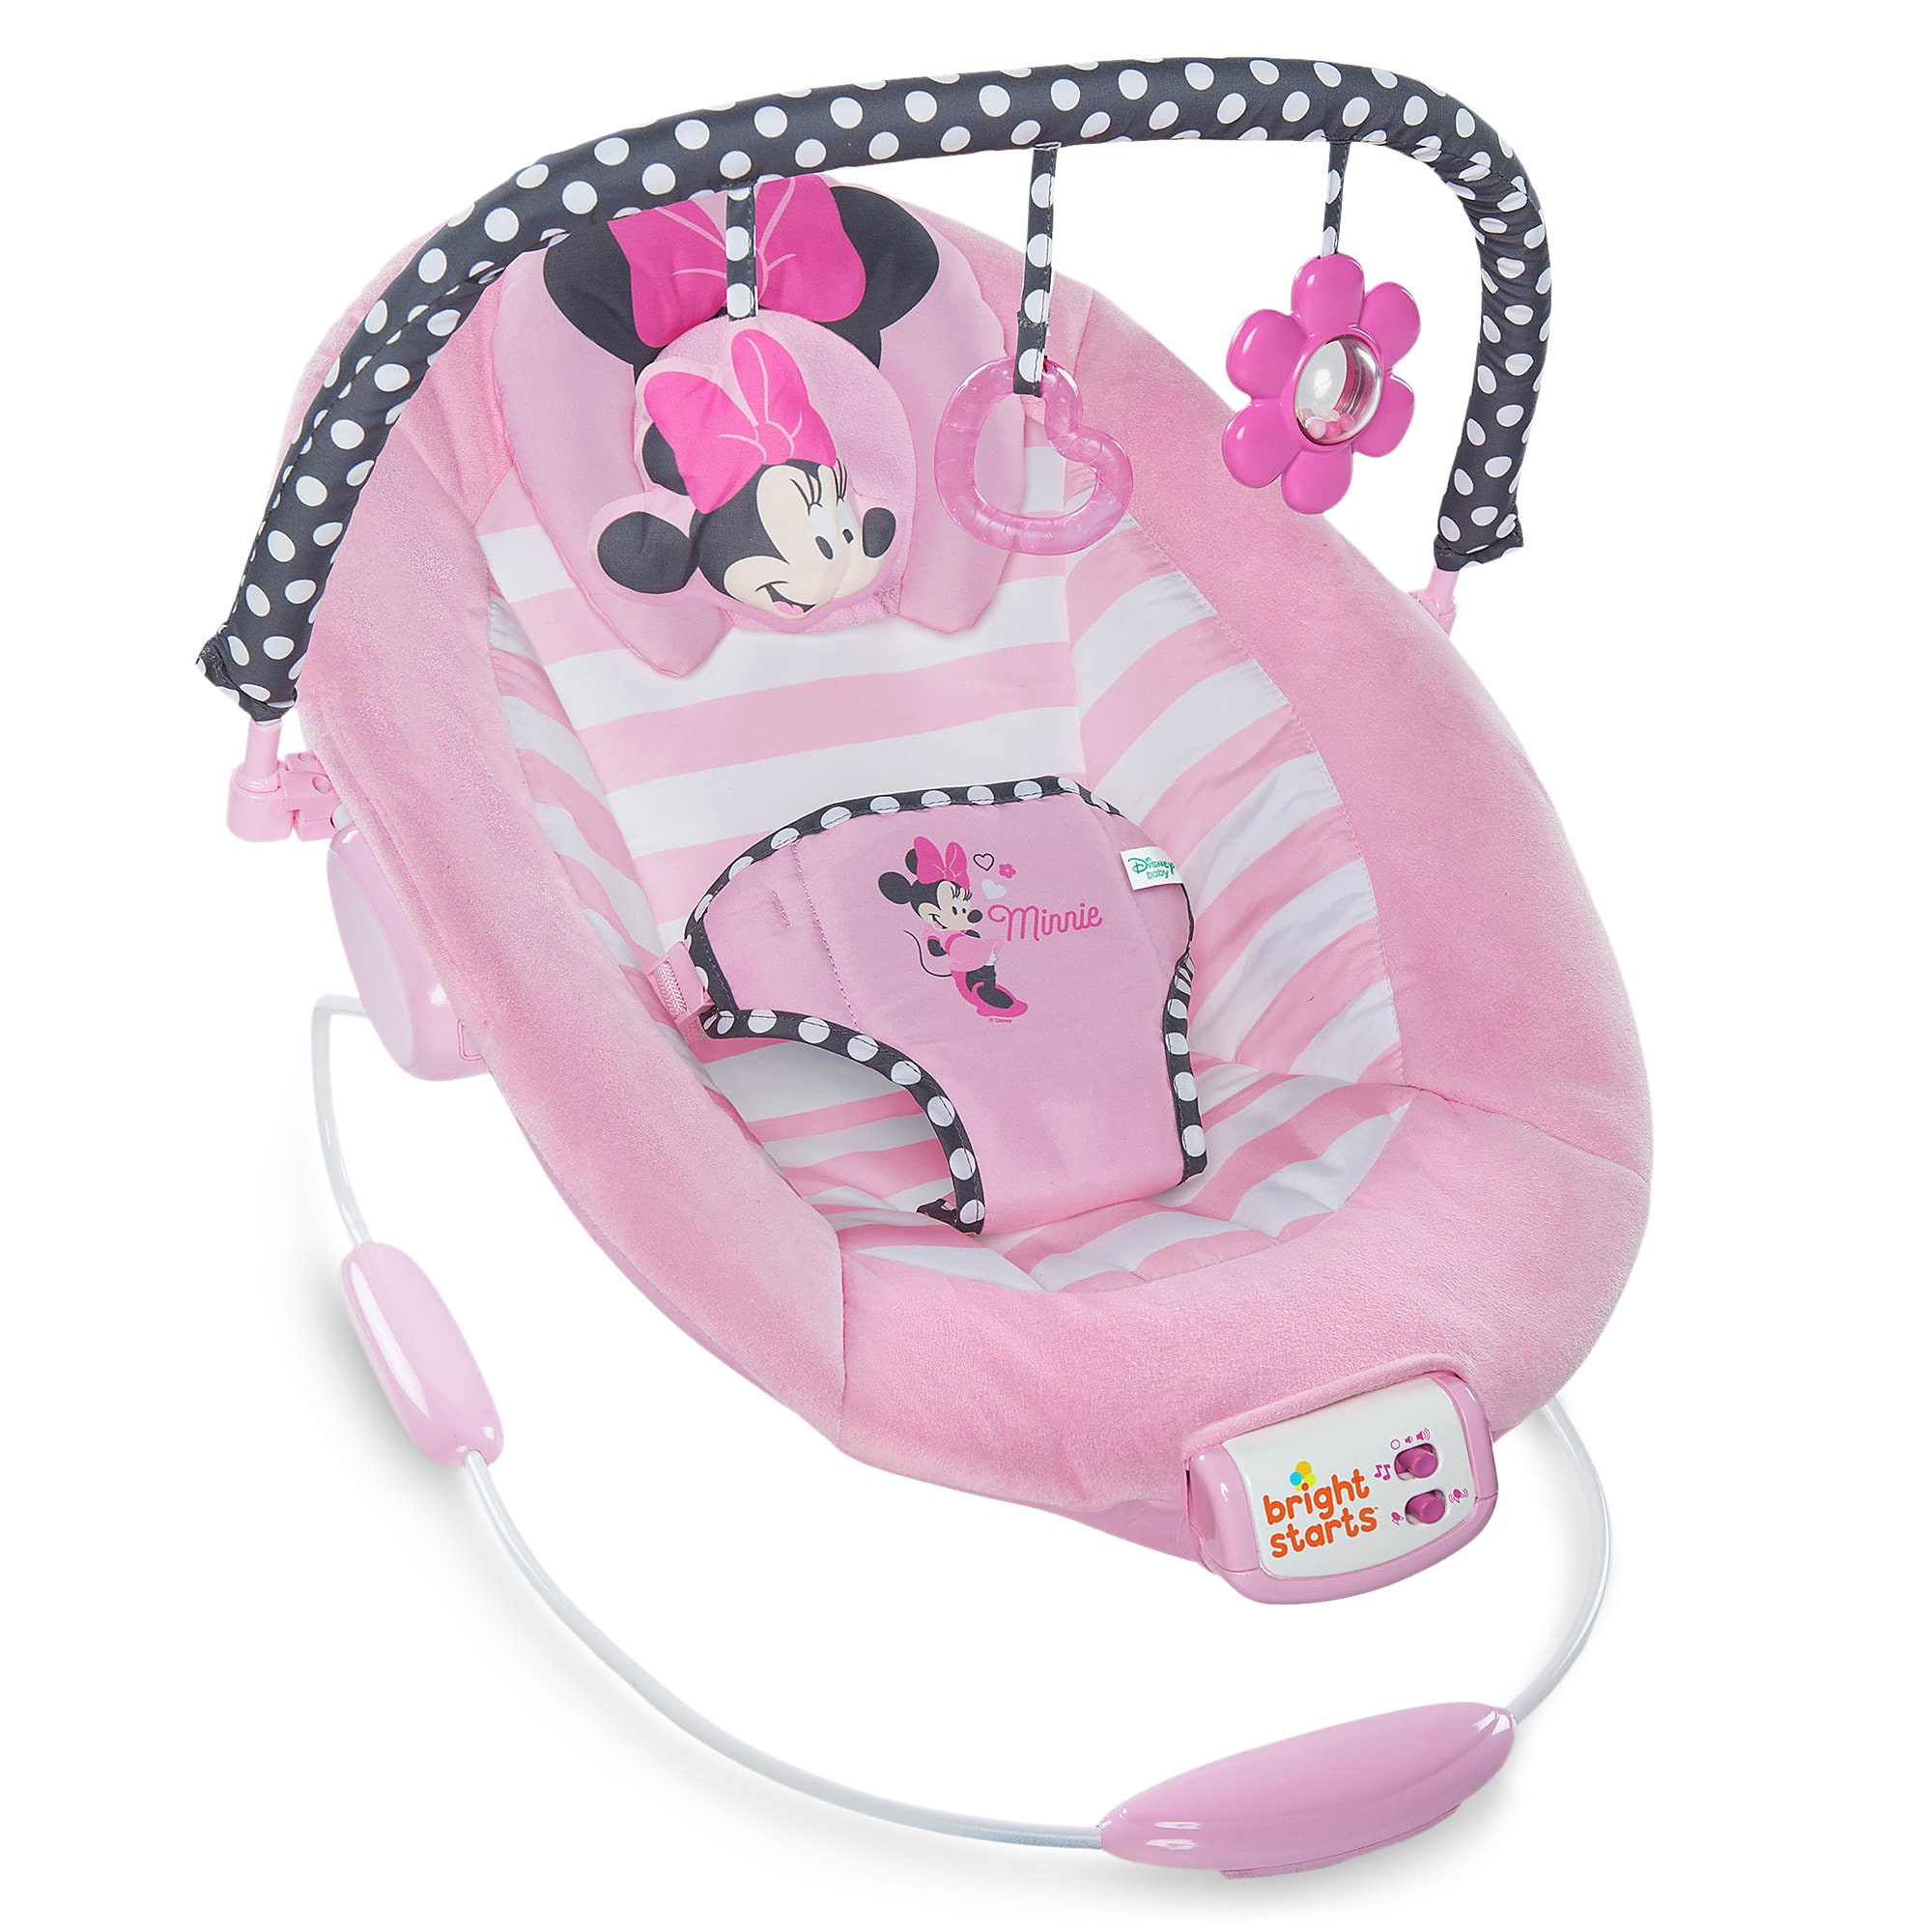 Bouncer Baby Minnie Mouse Bouncer Seat For Baby By Bright Starts